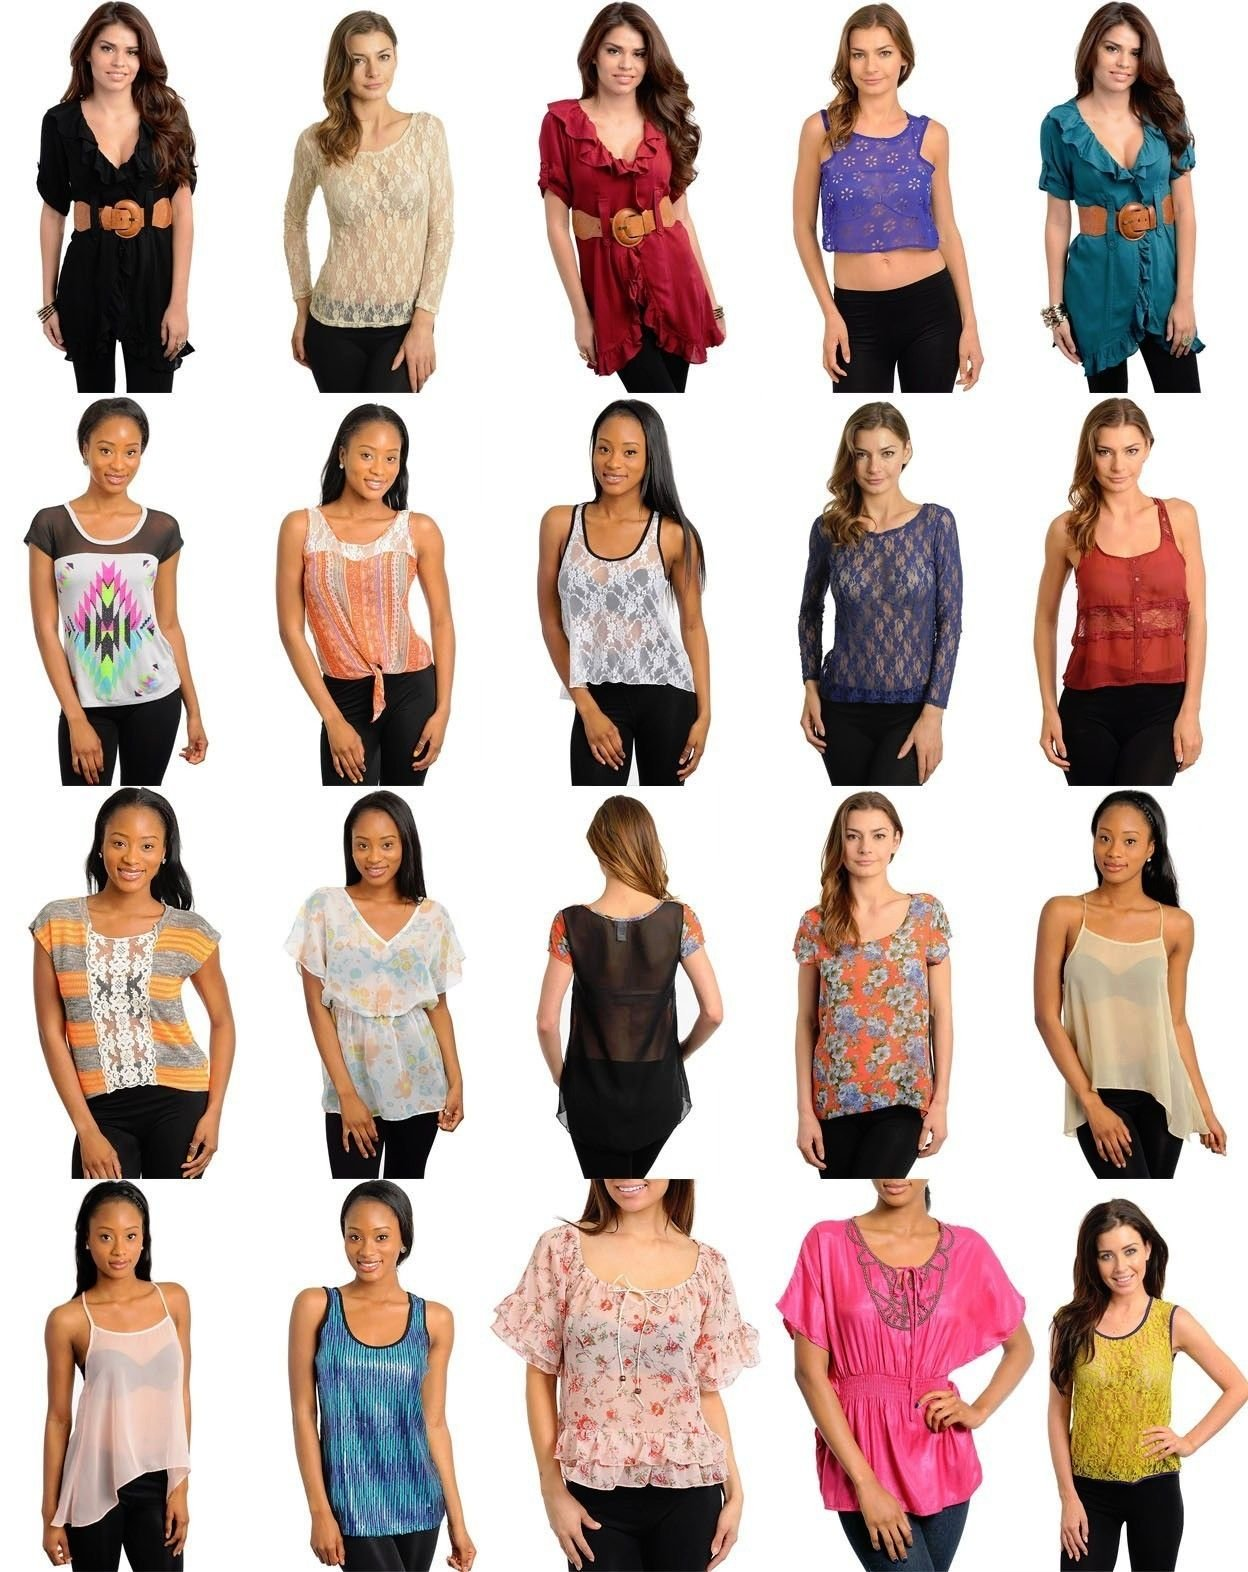 Variety Wholesale Lot 101 Pcs Womens Mixed Apparel Clothing Tops Skirts Lingerie S M L